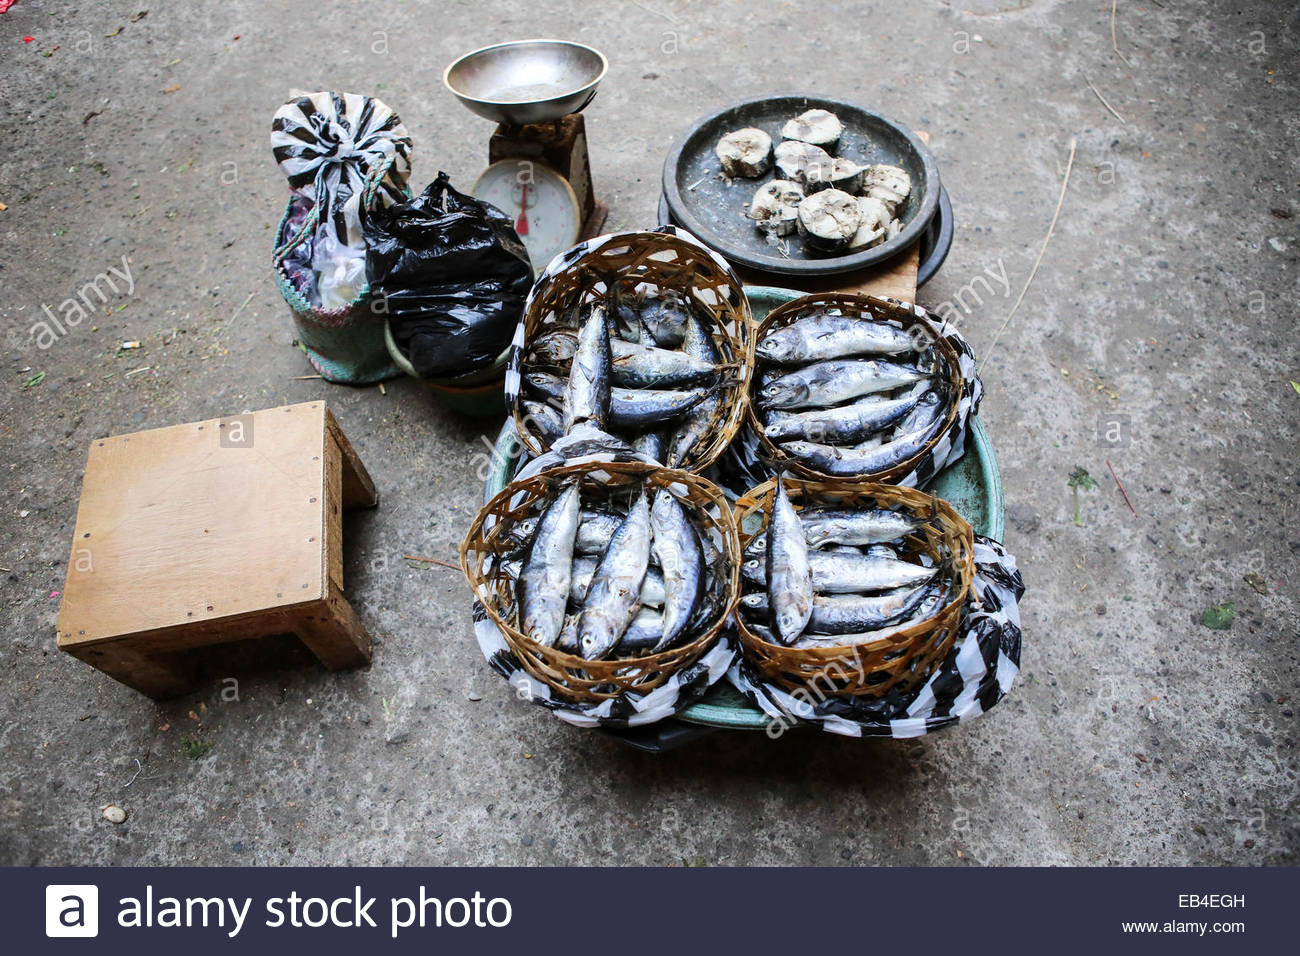 Fish stall at the market - Stock Image